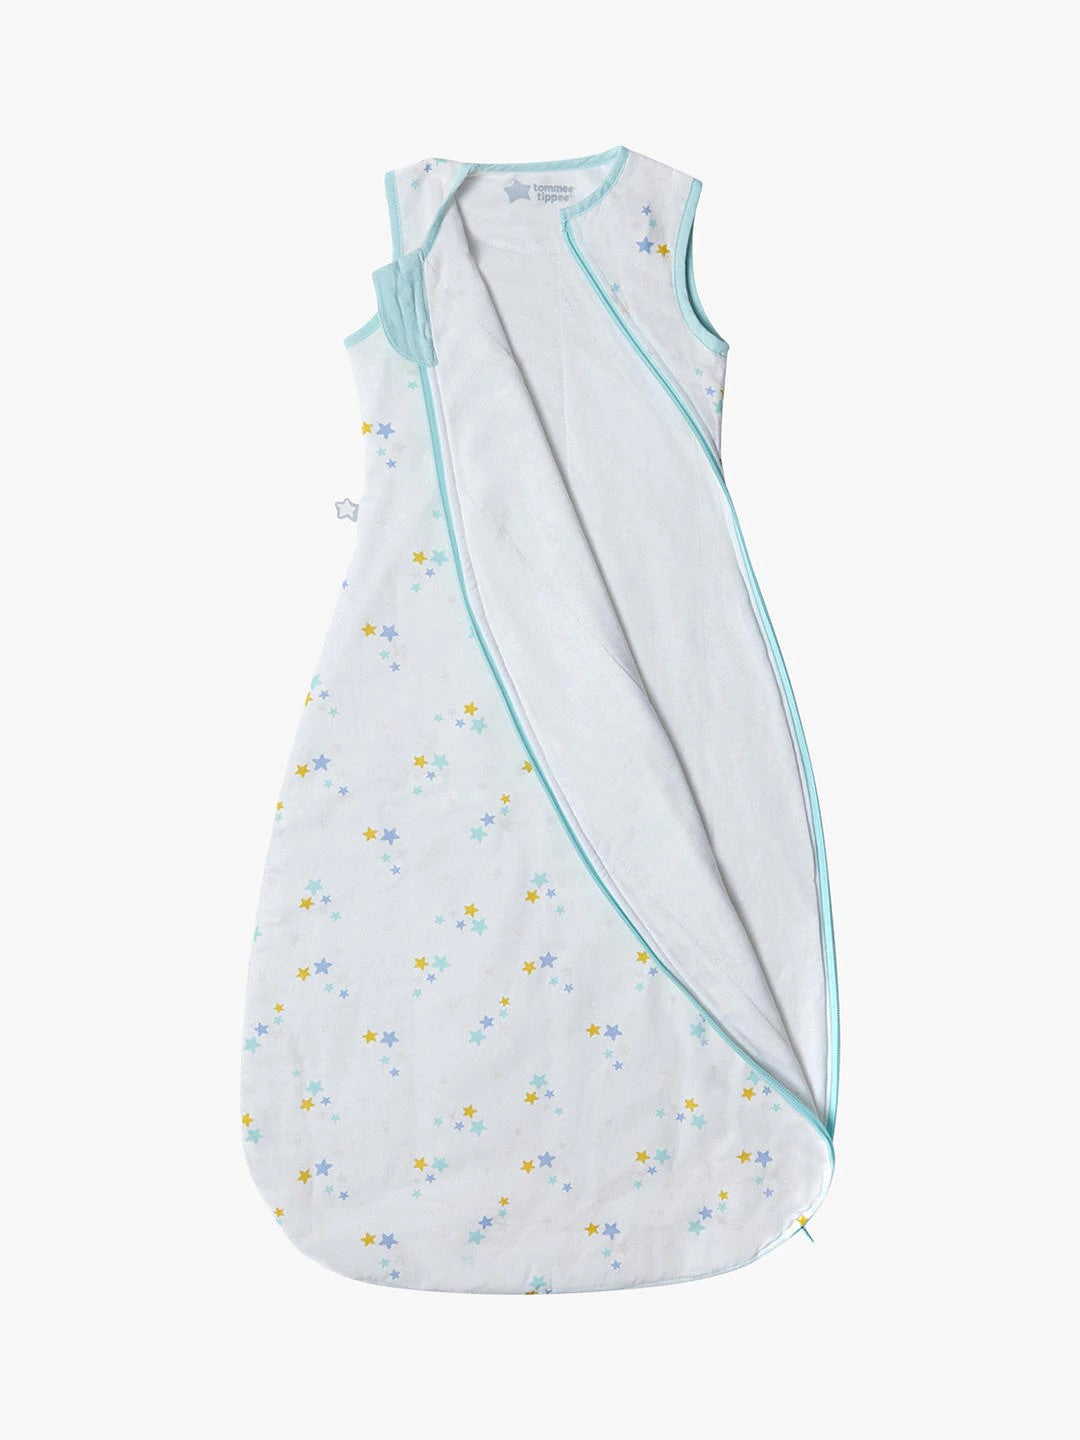 Tommee Tippee- 6-18m 2.5 Tog Little Stars Sleepbag